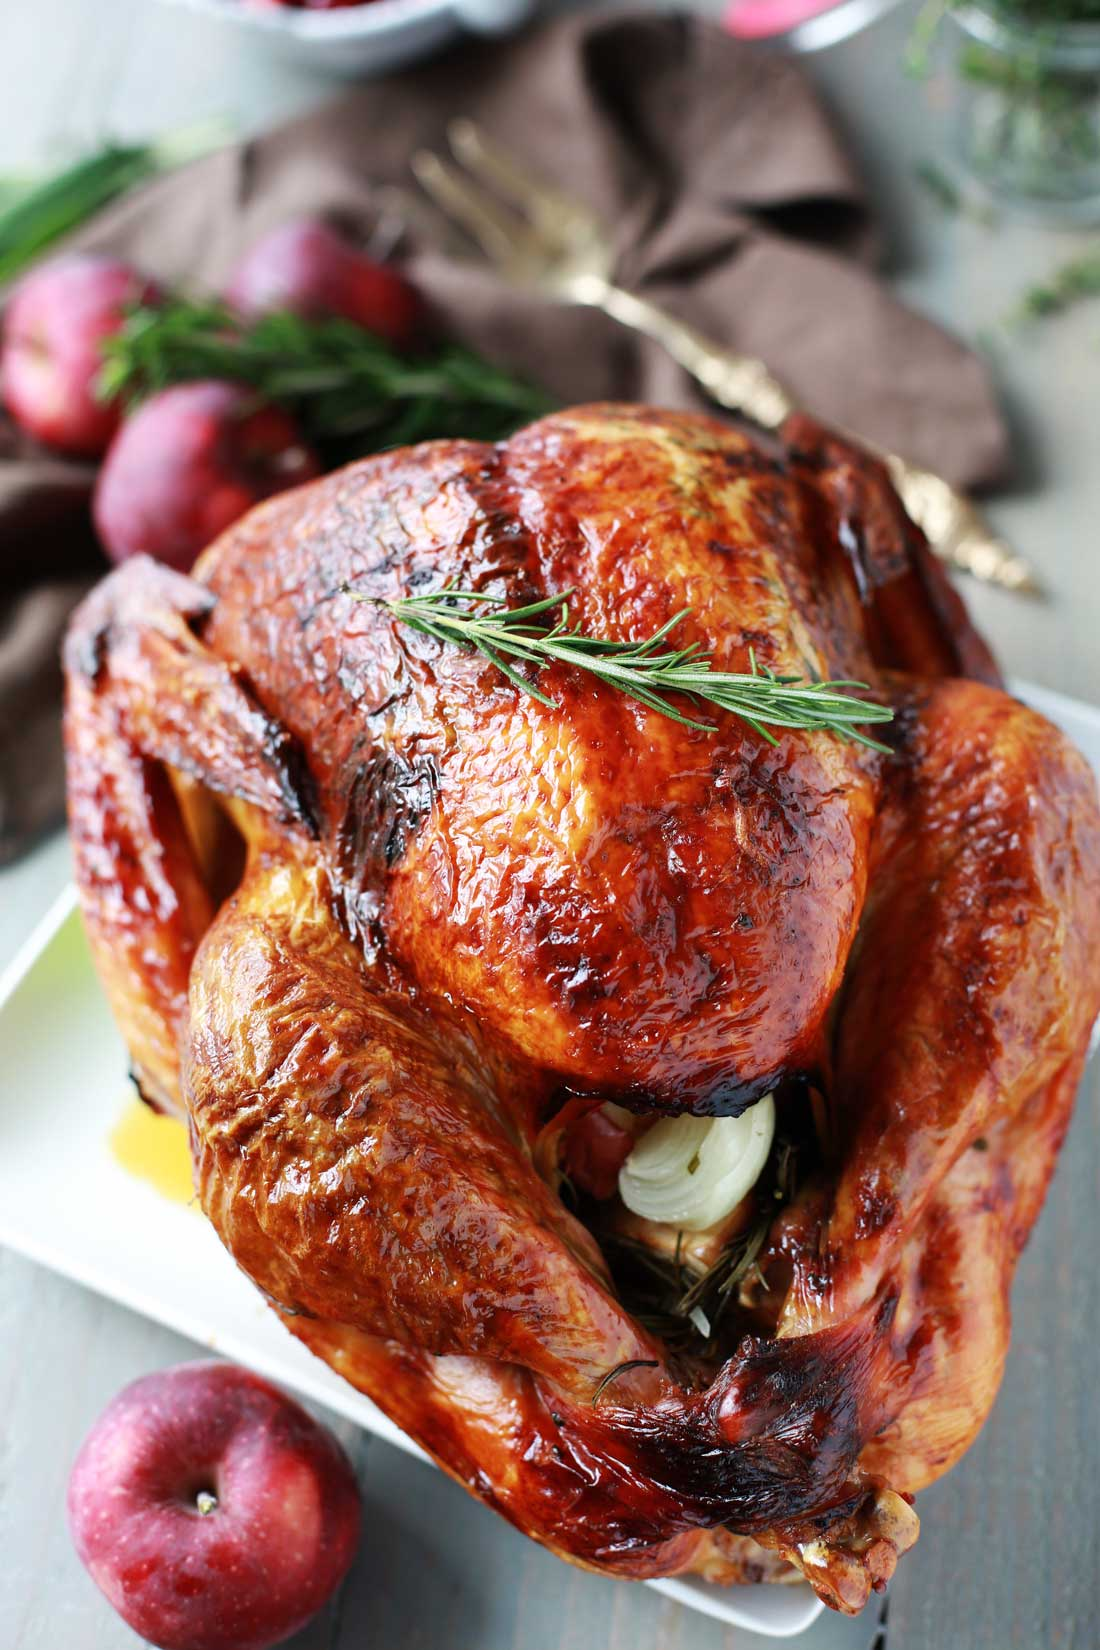 This aromatic lemon, apple and herb turkey is moist, tender, delicious and the perfect centerpiece for your holiday meal! It is easy to make and bursting with flavor.